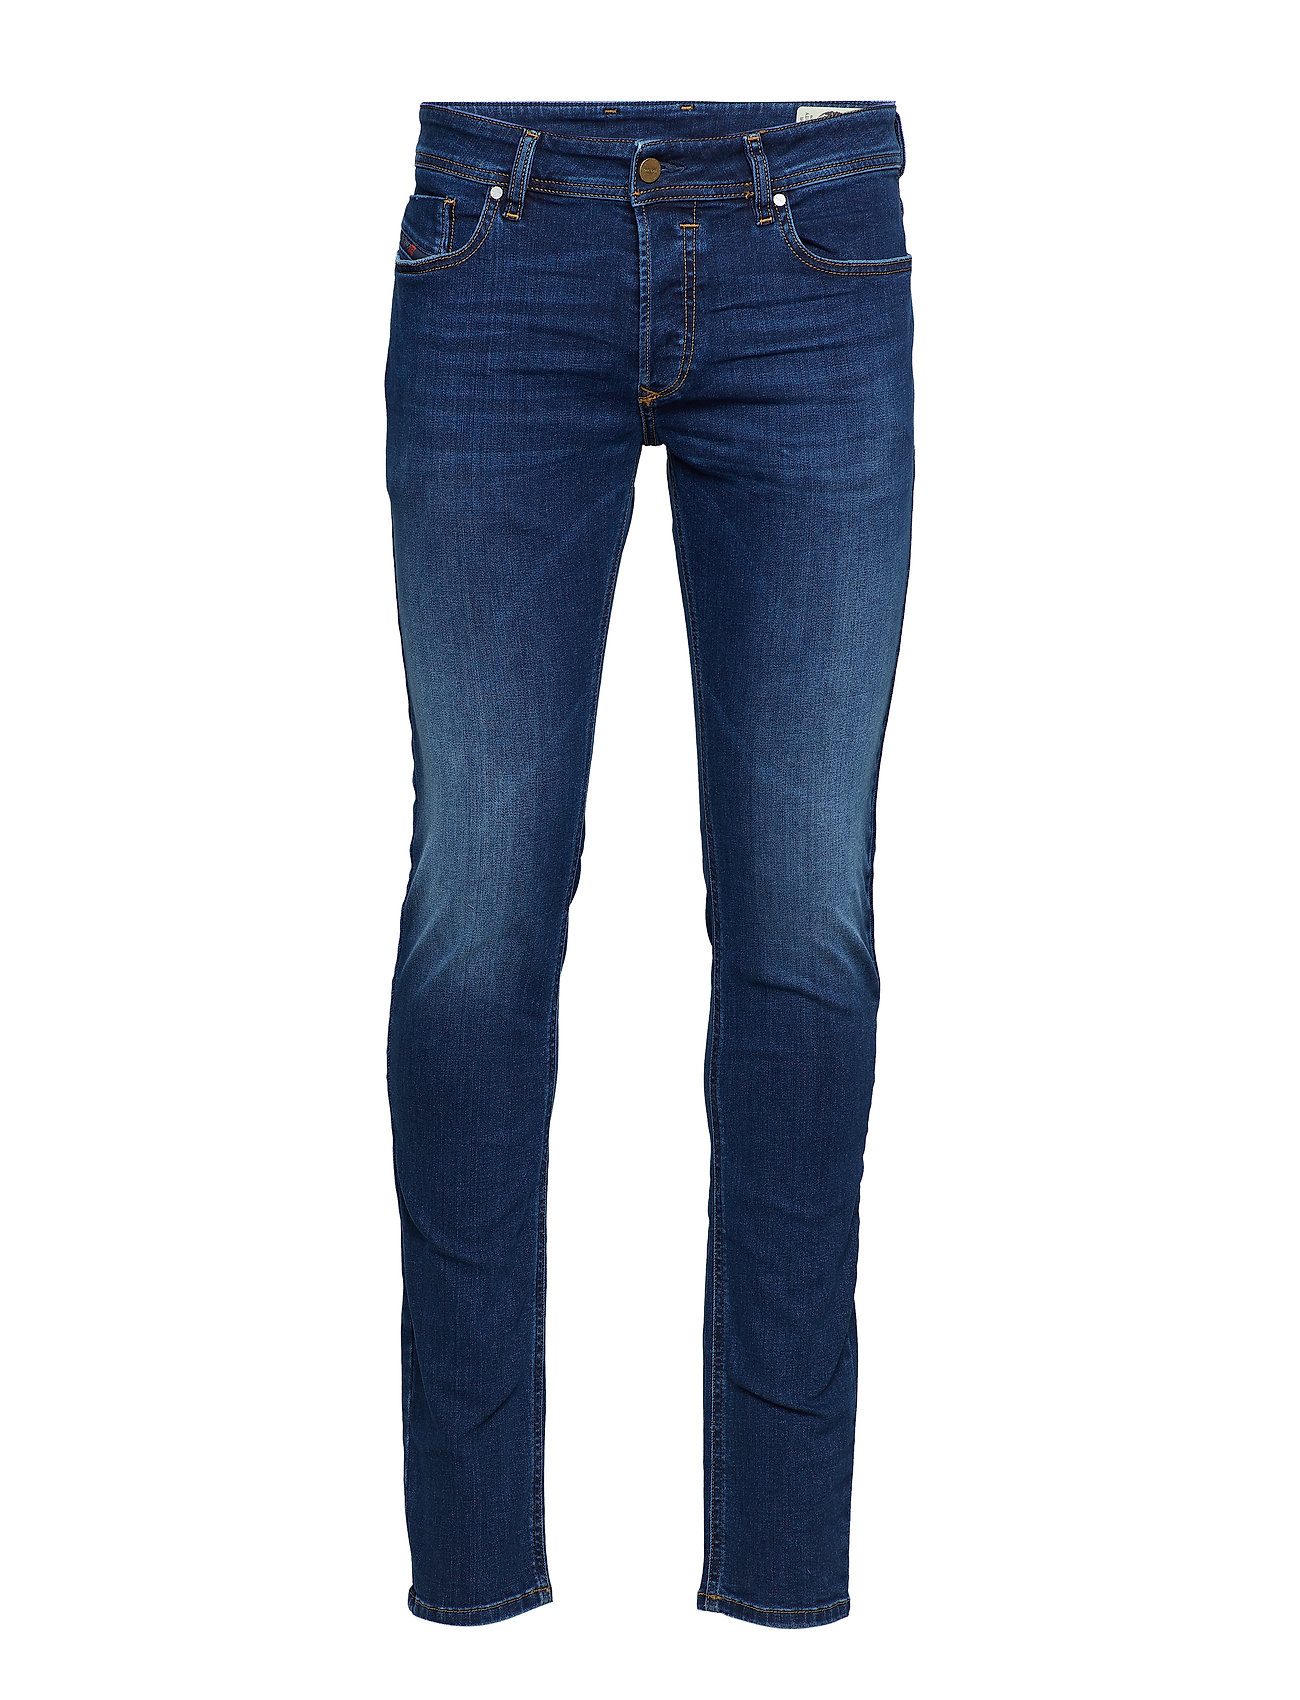 Diesel Men SLEENKER - DENIM